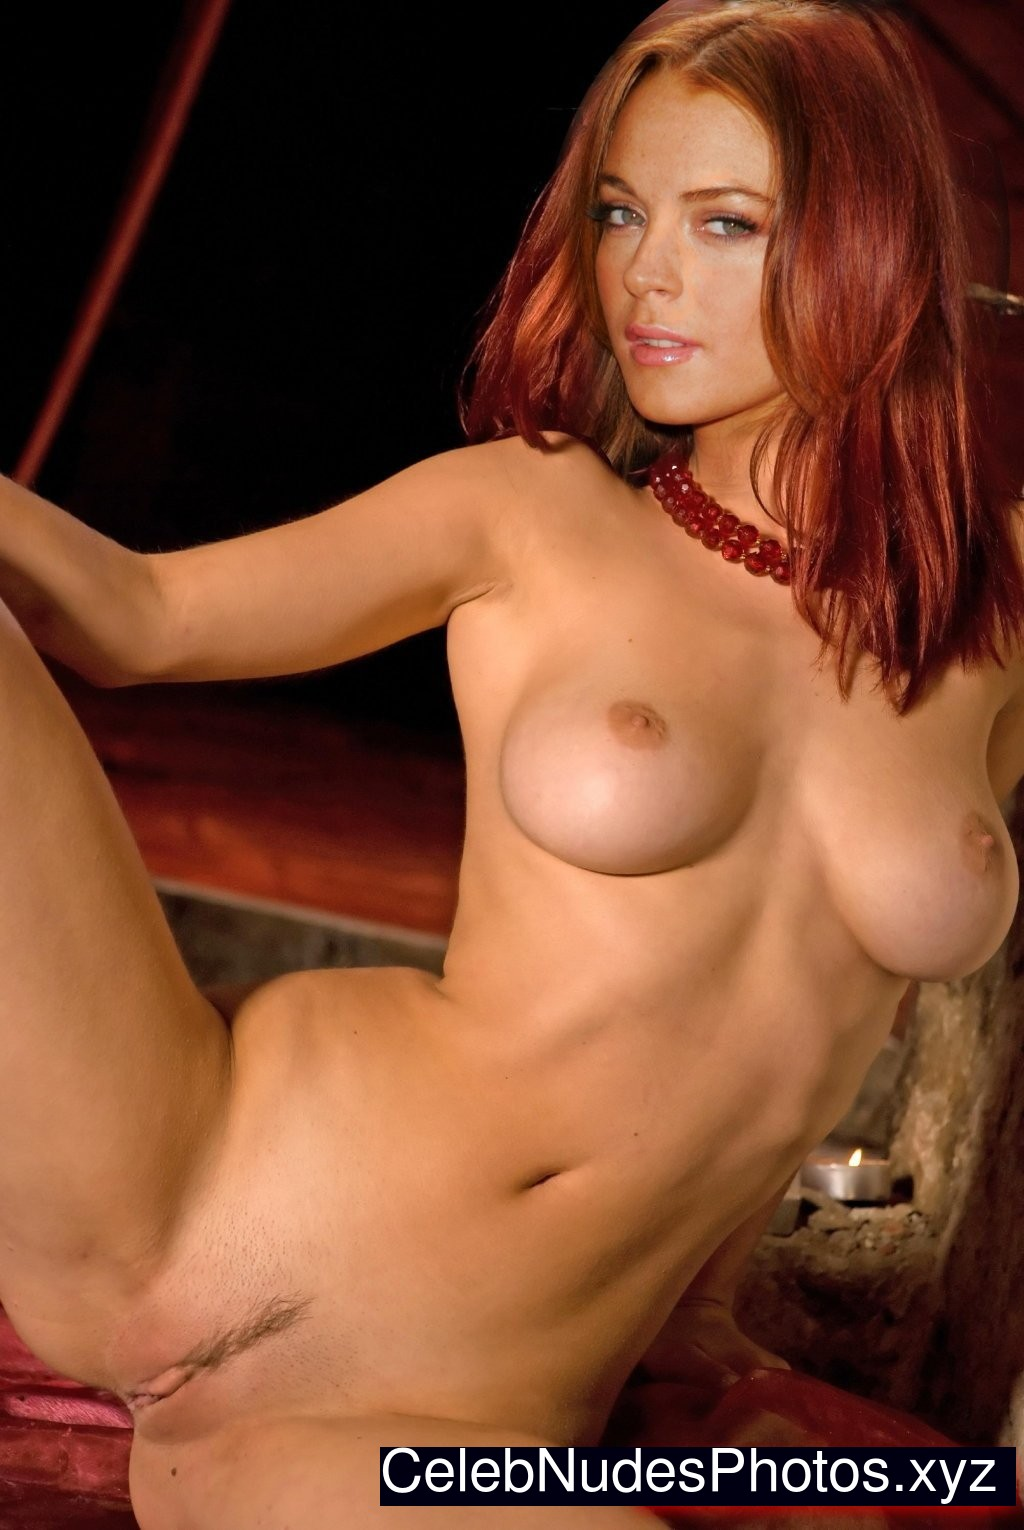 lindsay lohan nude photo gallery